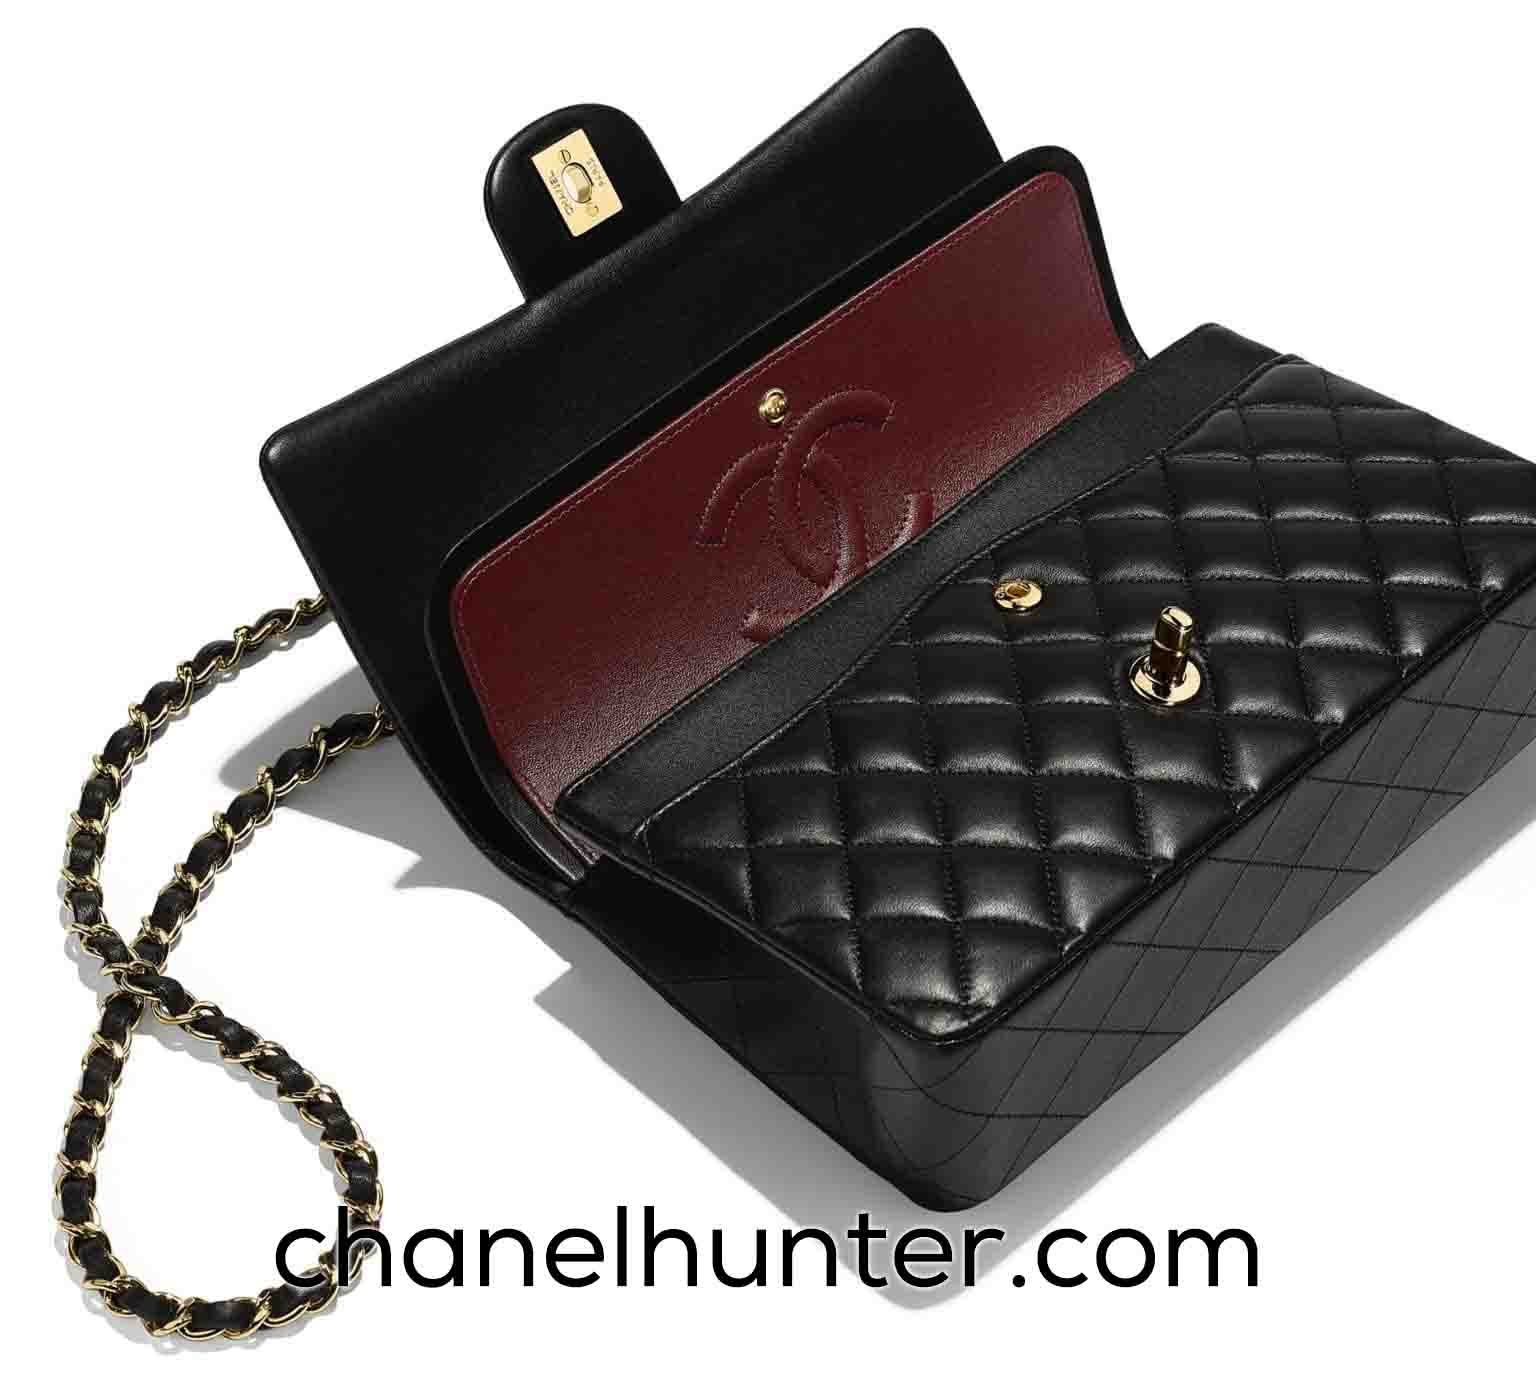 3ad2d52ea213fb Original Chanel handbags and handbags are high priced, and they should also  pass prices through the clouds with rockets. But you receive replicas of  the ...